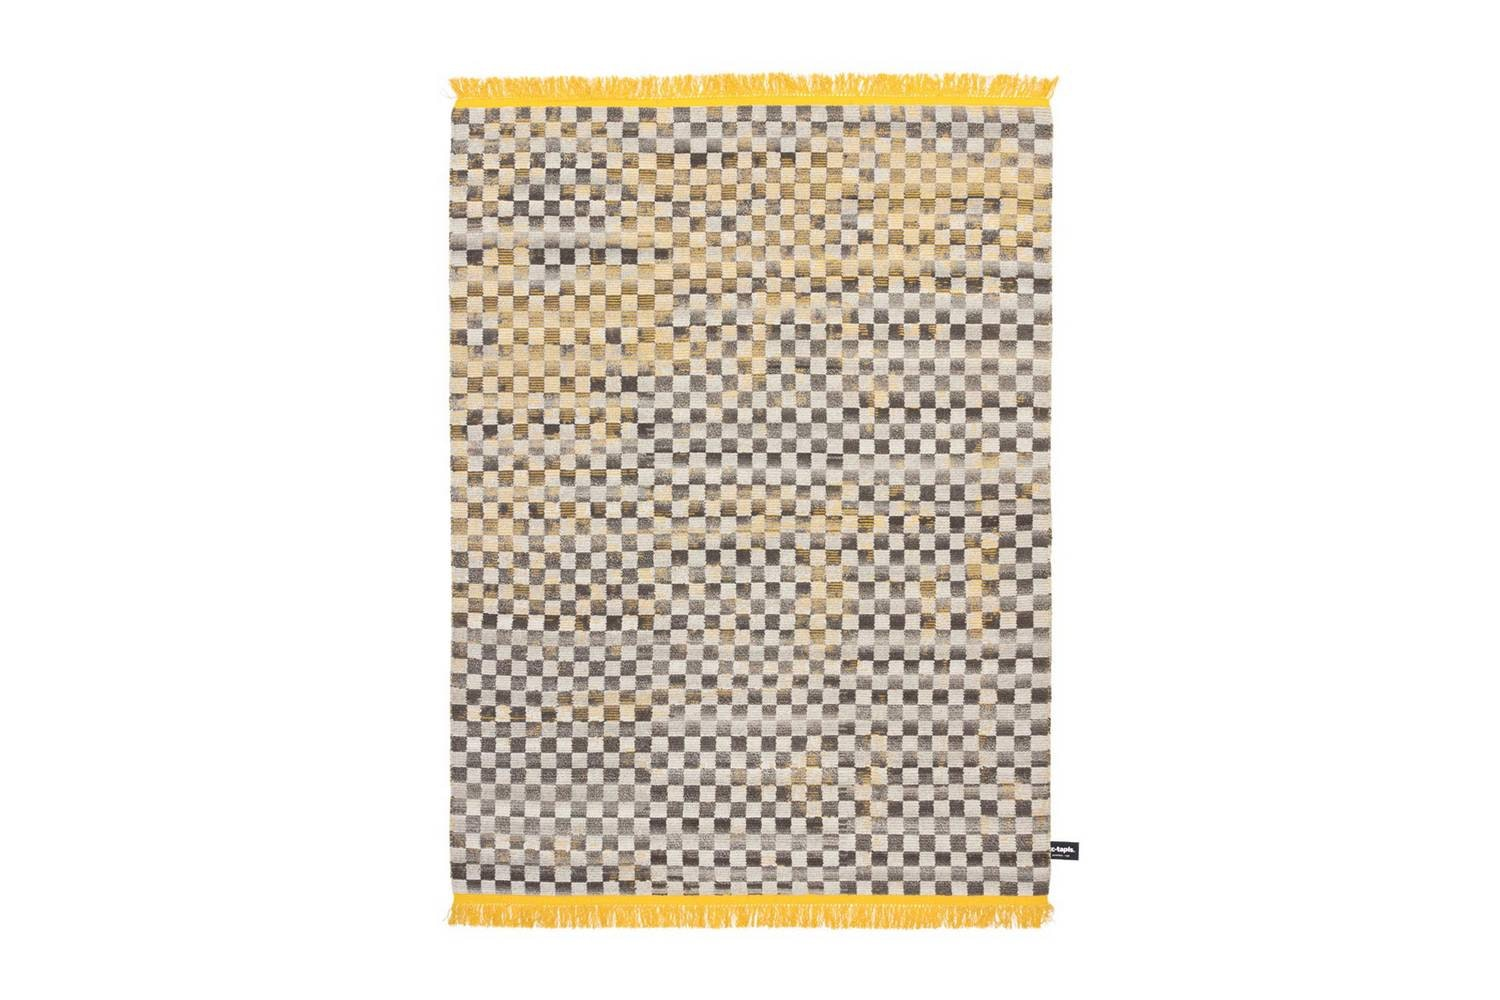 Oldie Damier Rug by Oldie Collection for CC-Tapis